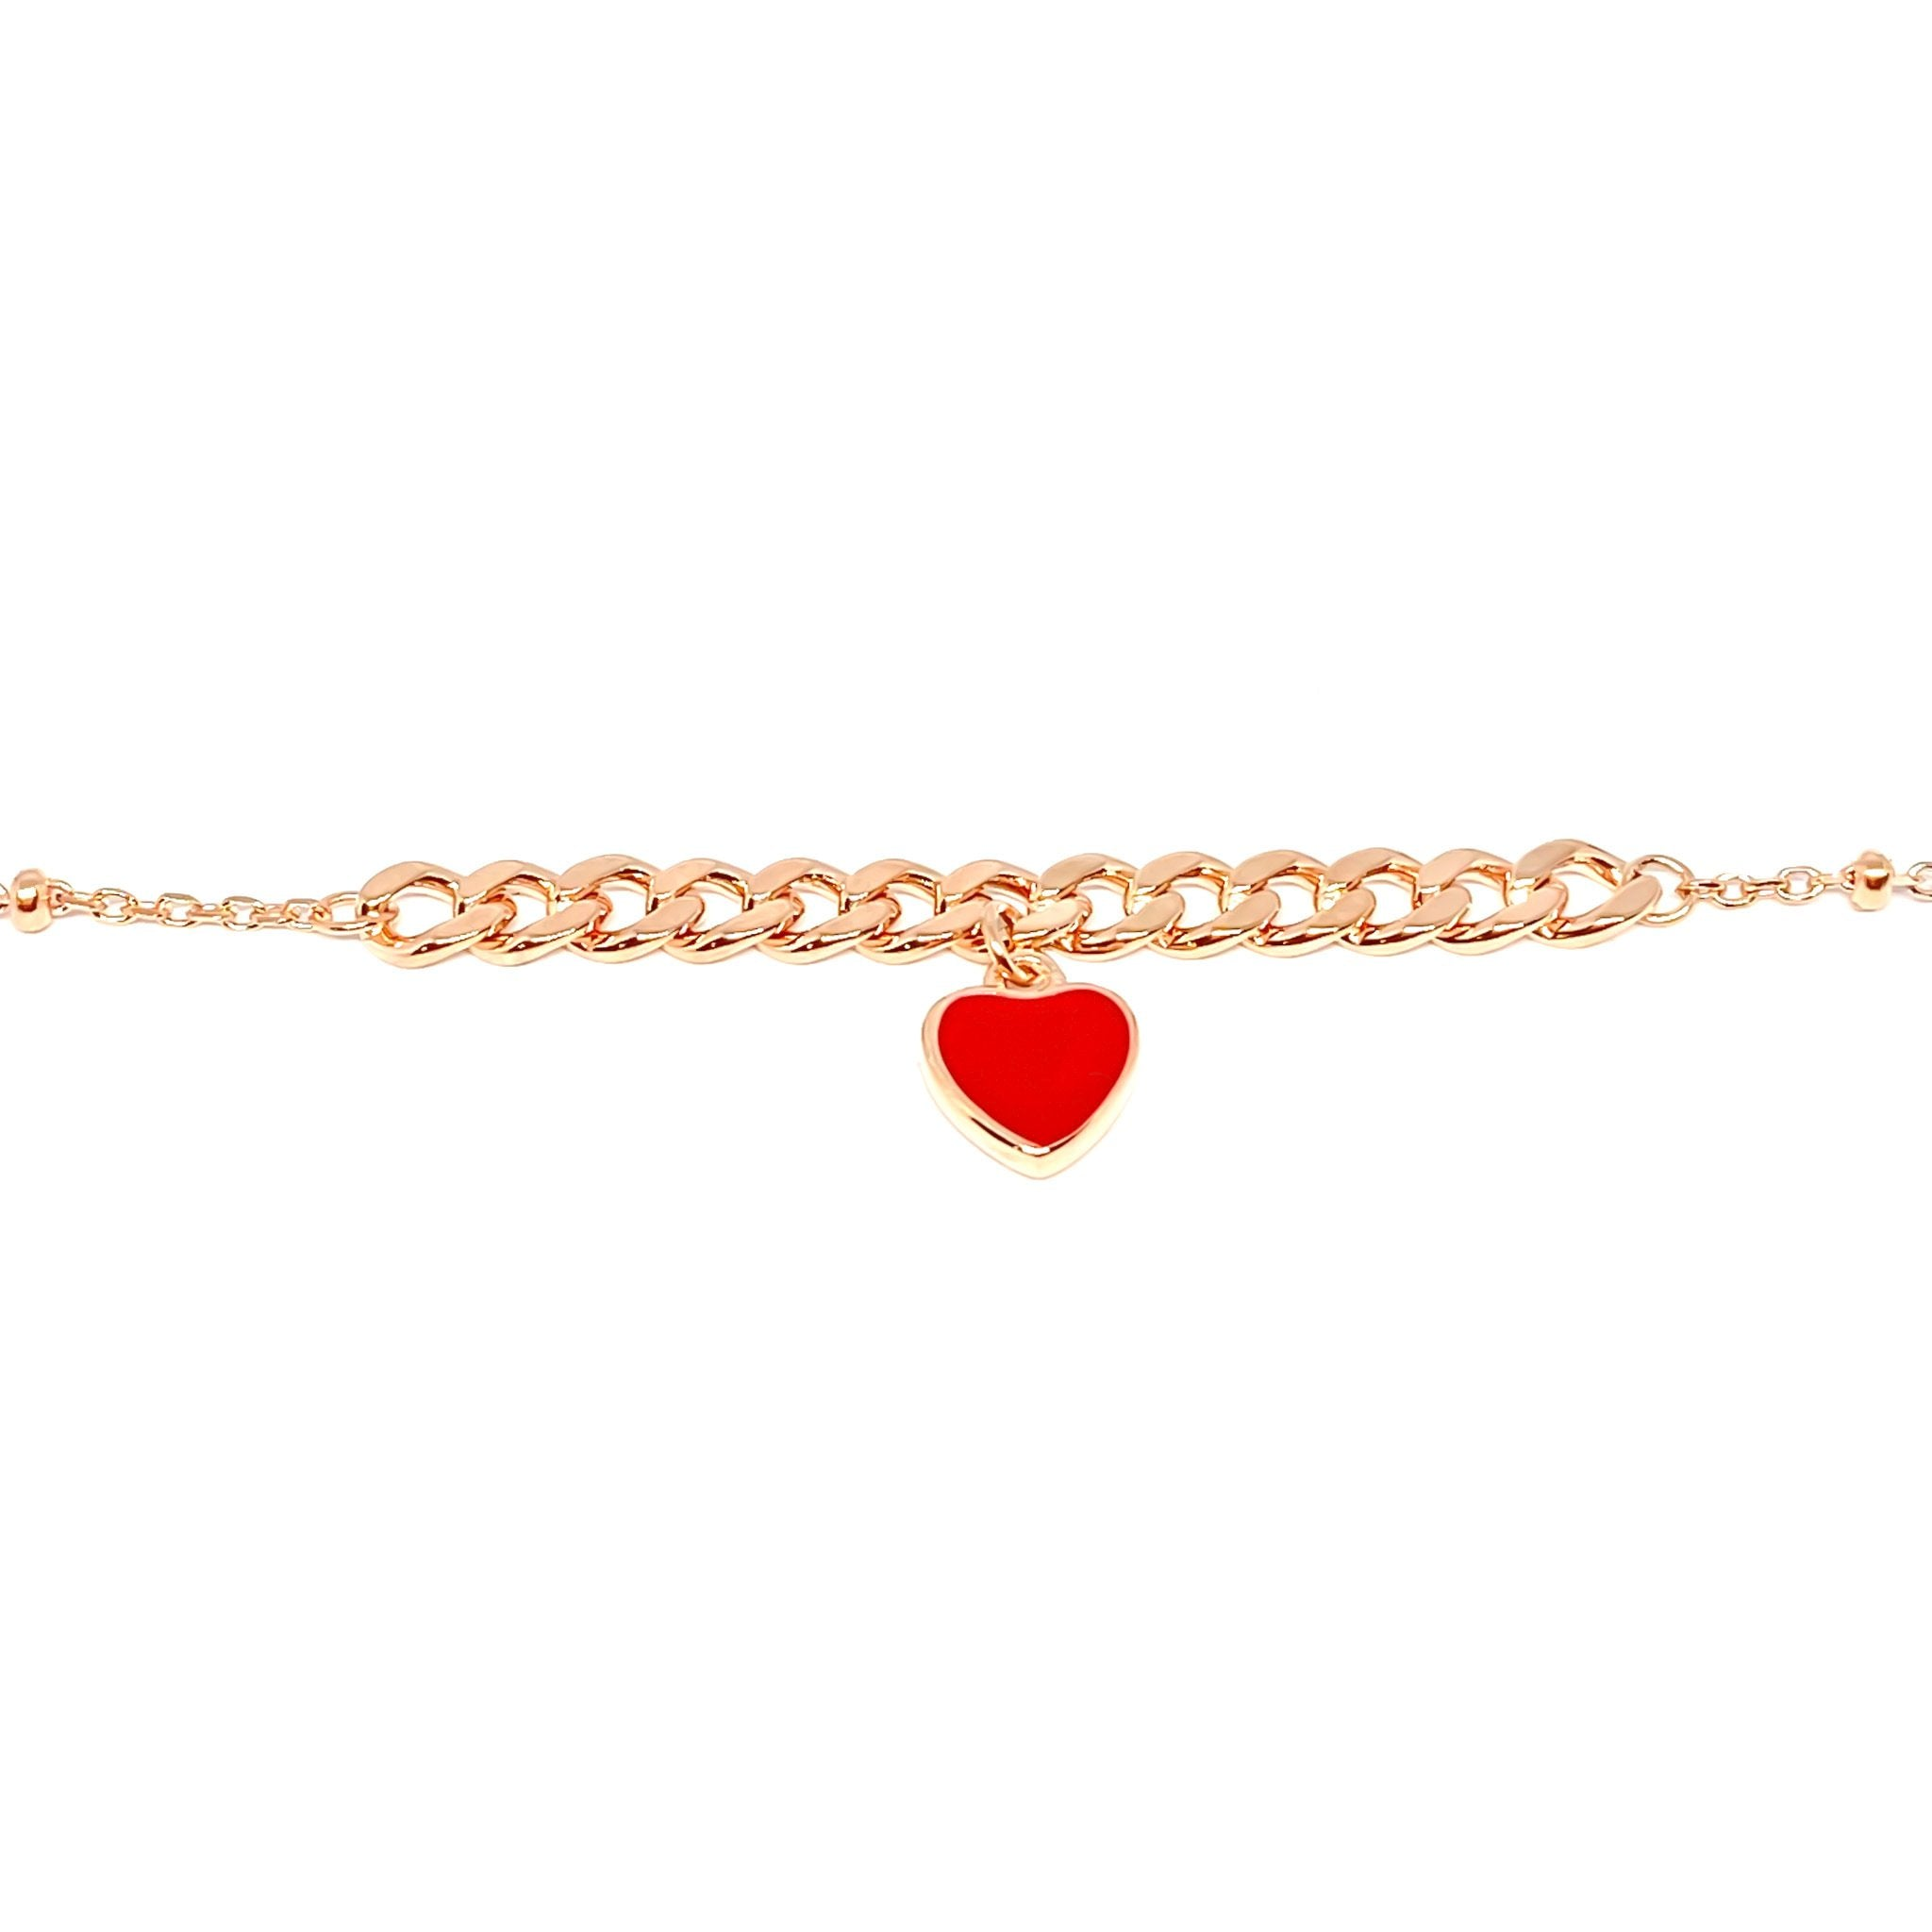 Red Heart Chain Bracelet